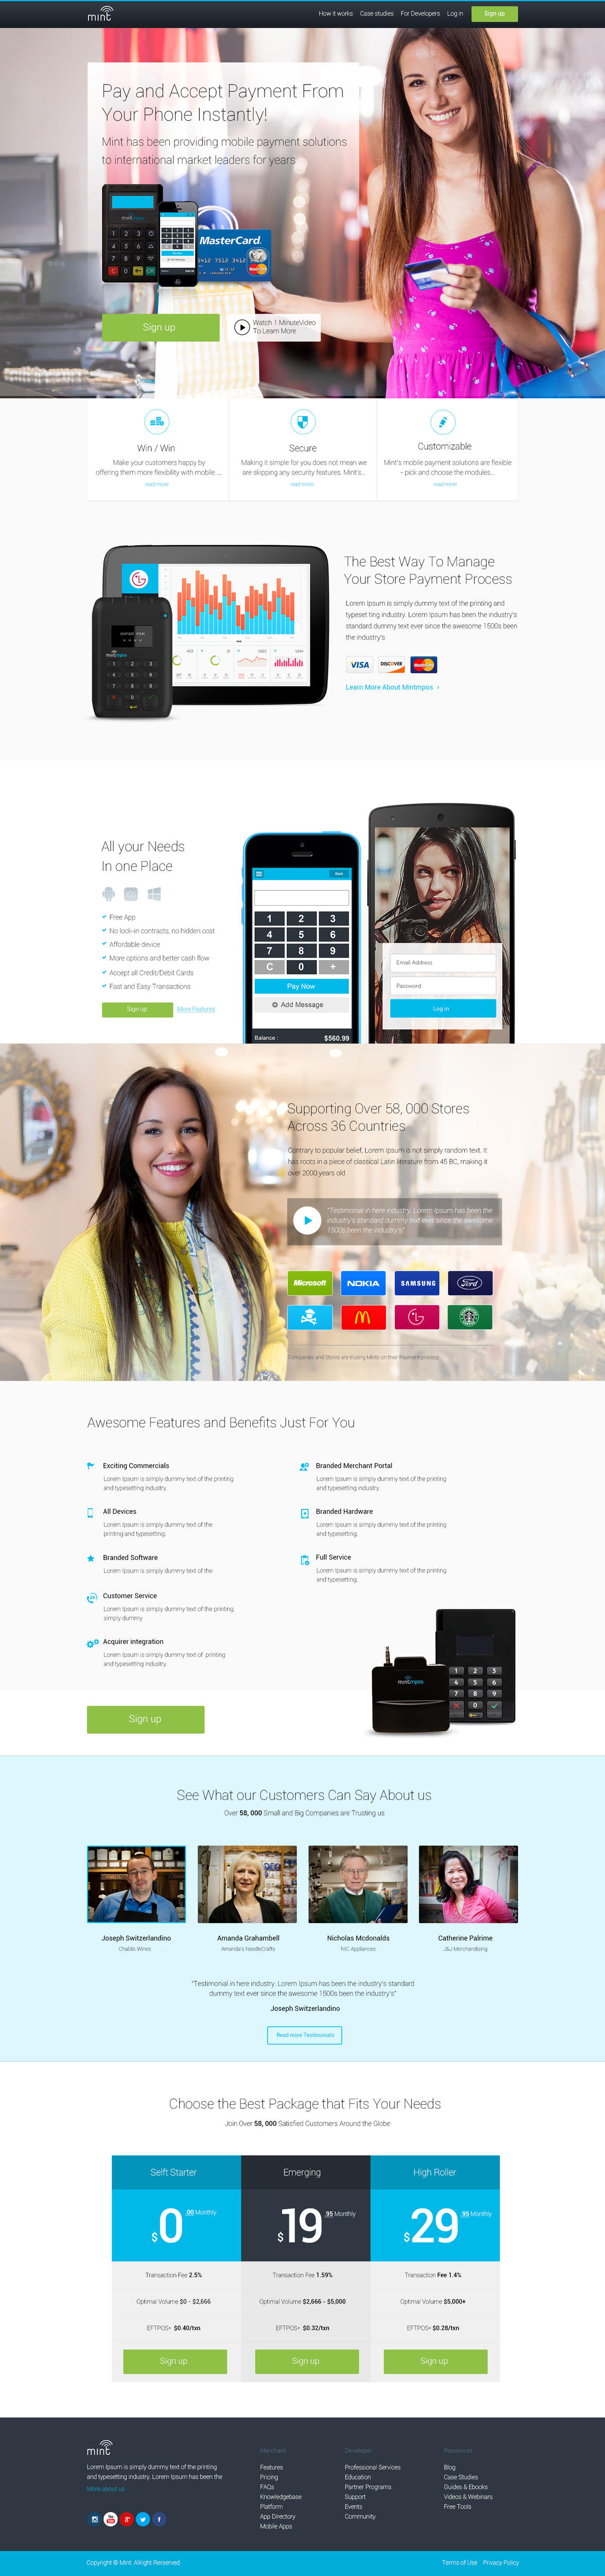 Beautiful And Conversion Focused Homepage Website Design by SixThousand_Studio - 59239